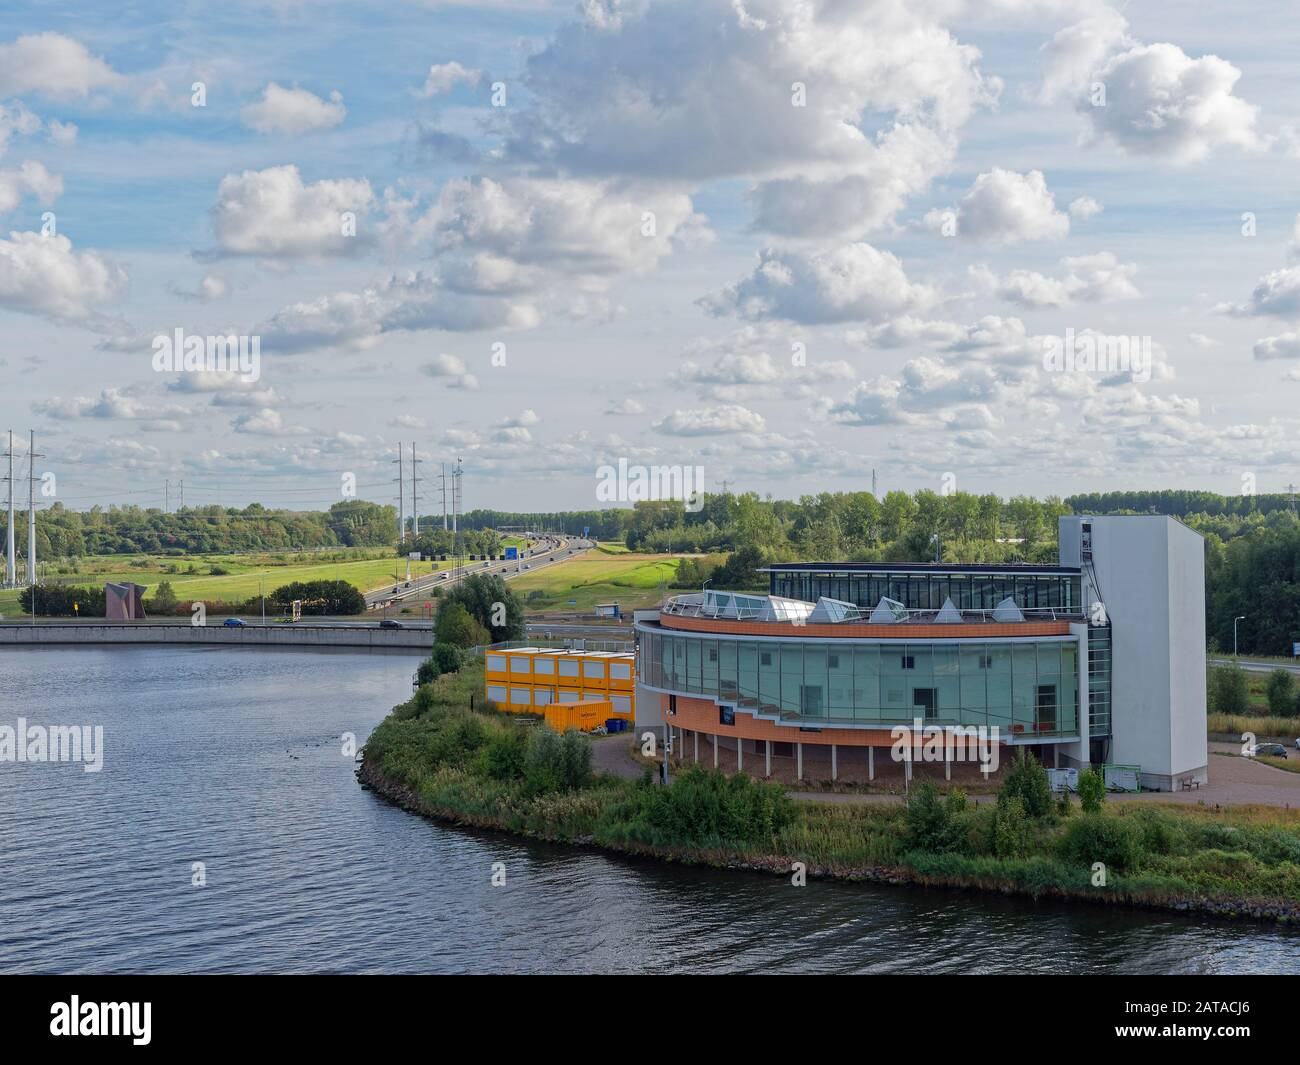 A modern Commercial building on the banks of the North Sea Canal, close to the A9 motorway which passes under the canal at the Velser tunnel. Stock Photo